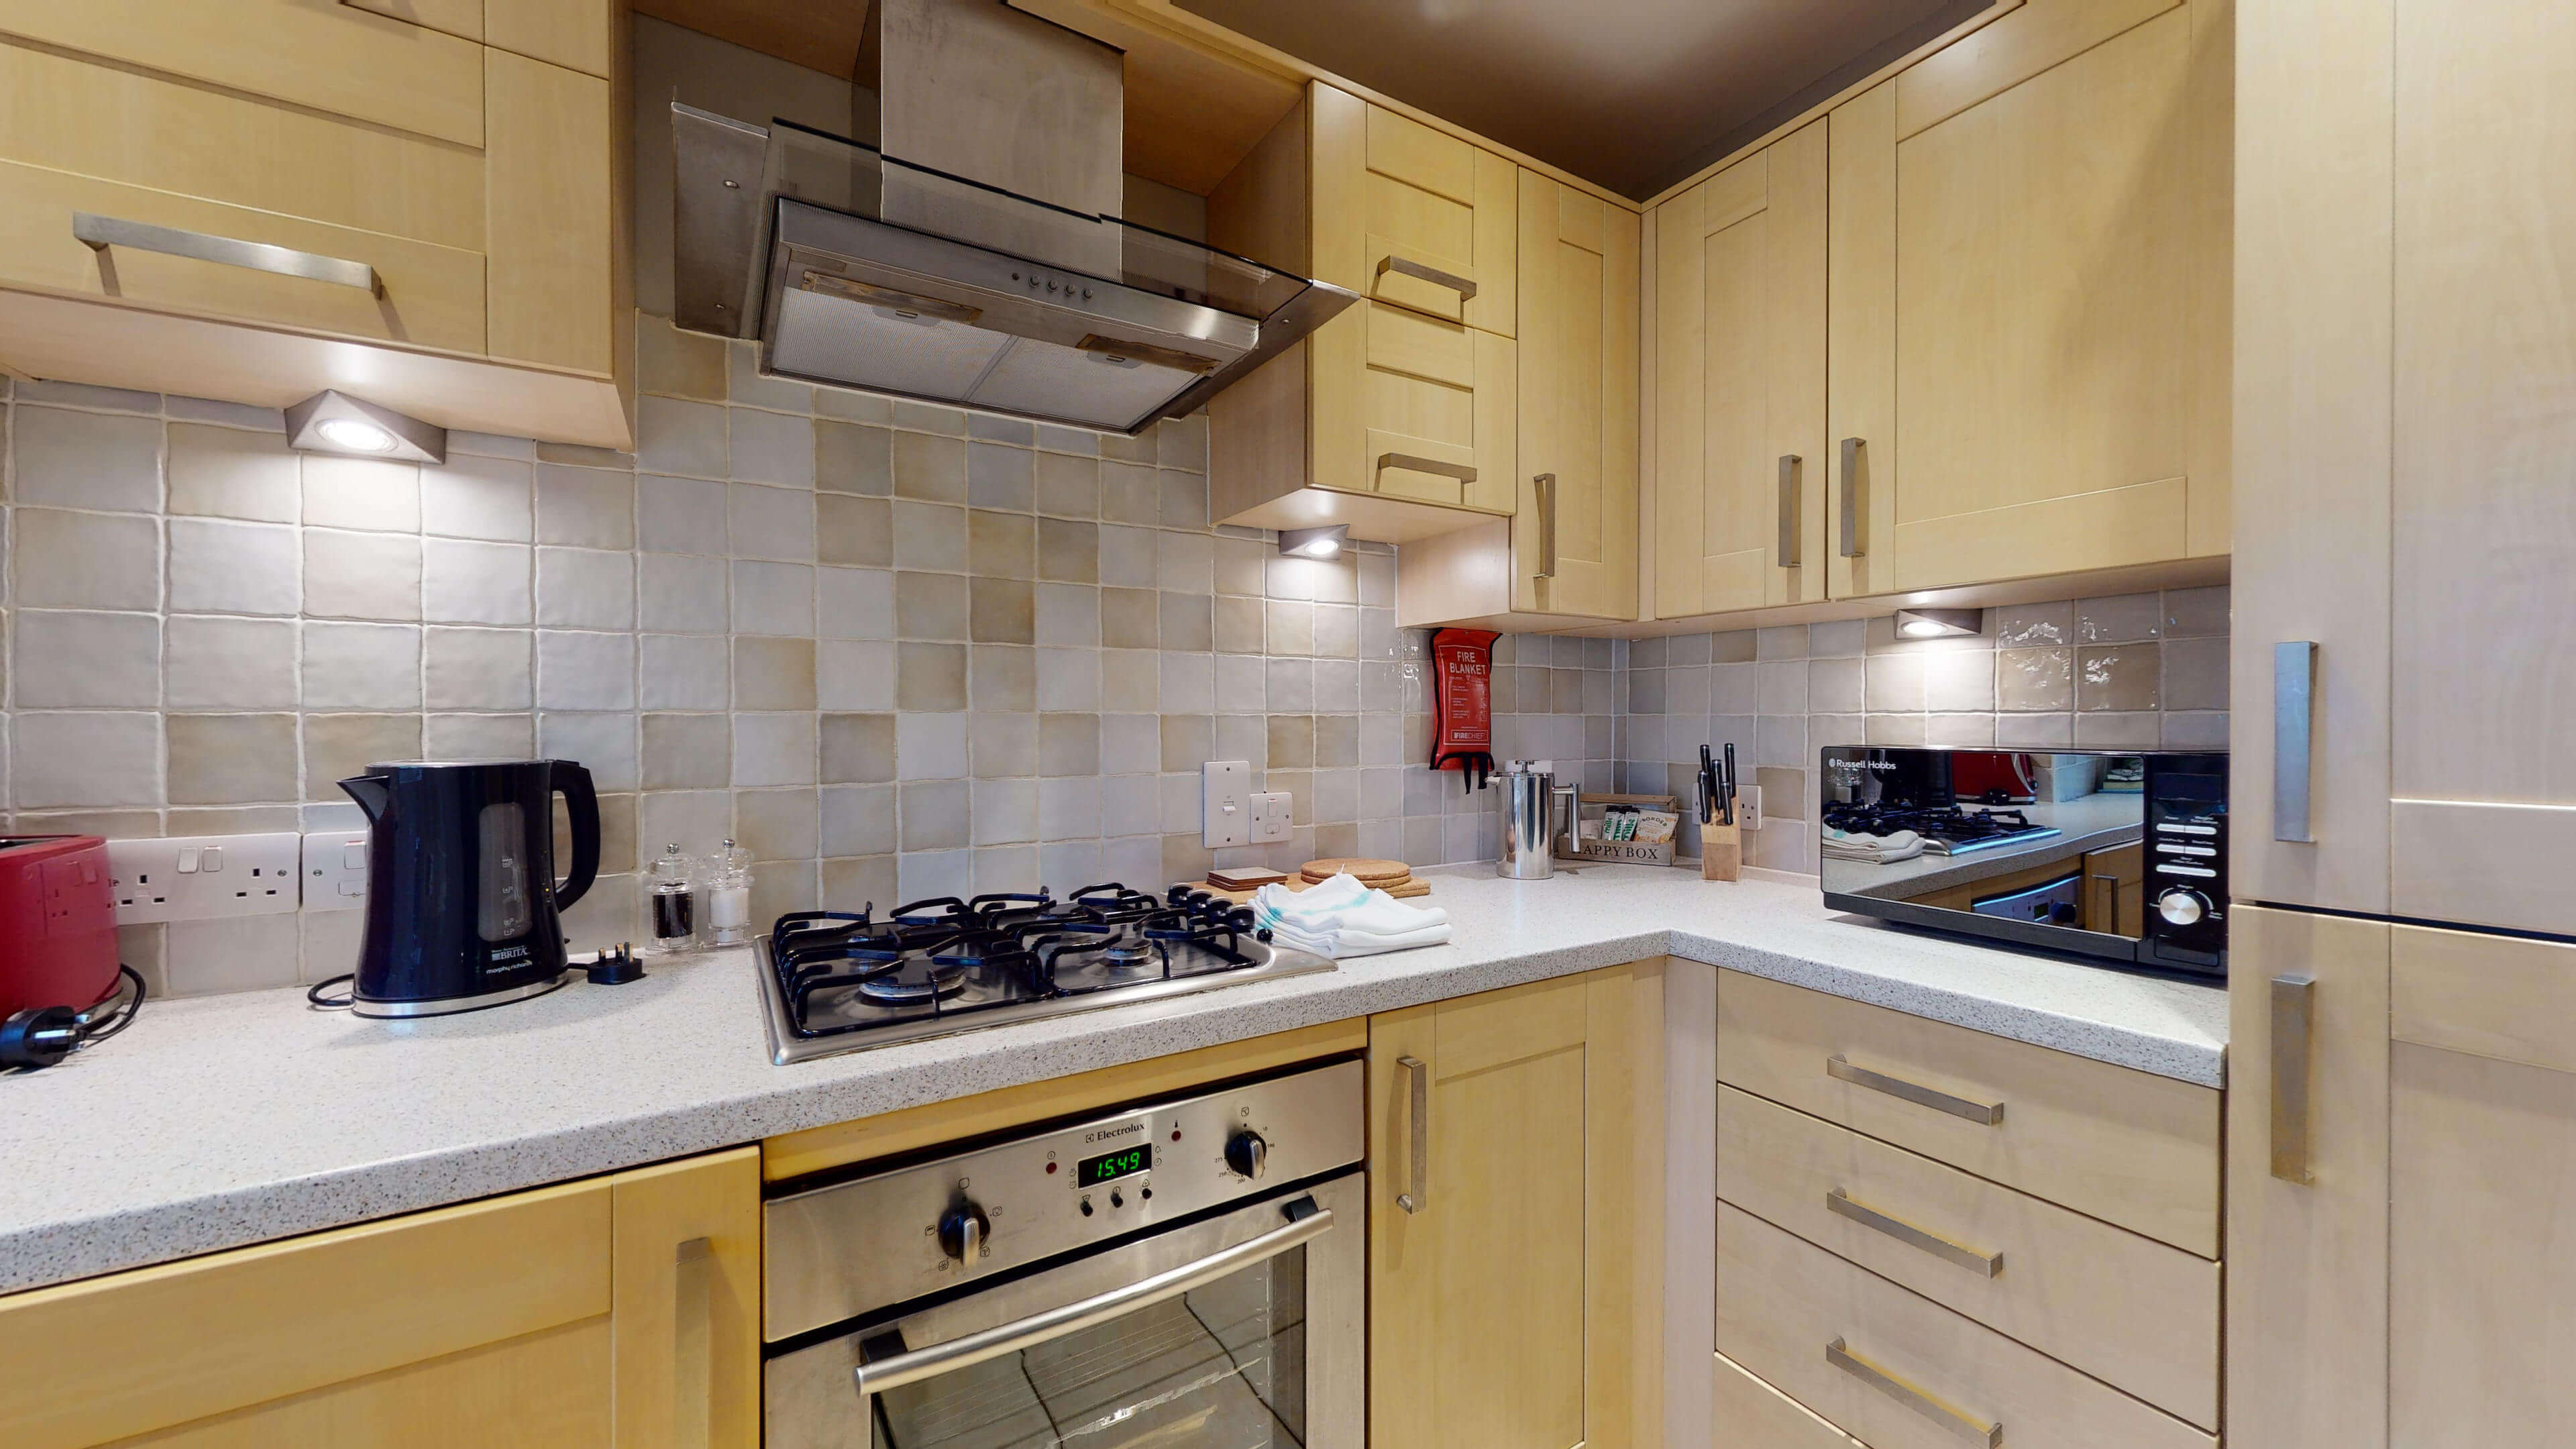 Oxford Serviced Apartment Blenheim Suite Kitchen Two